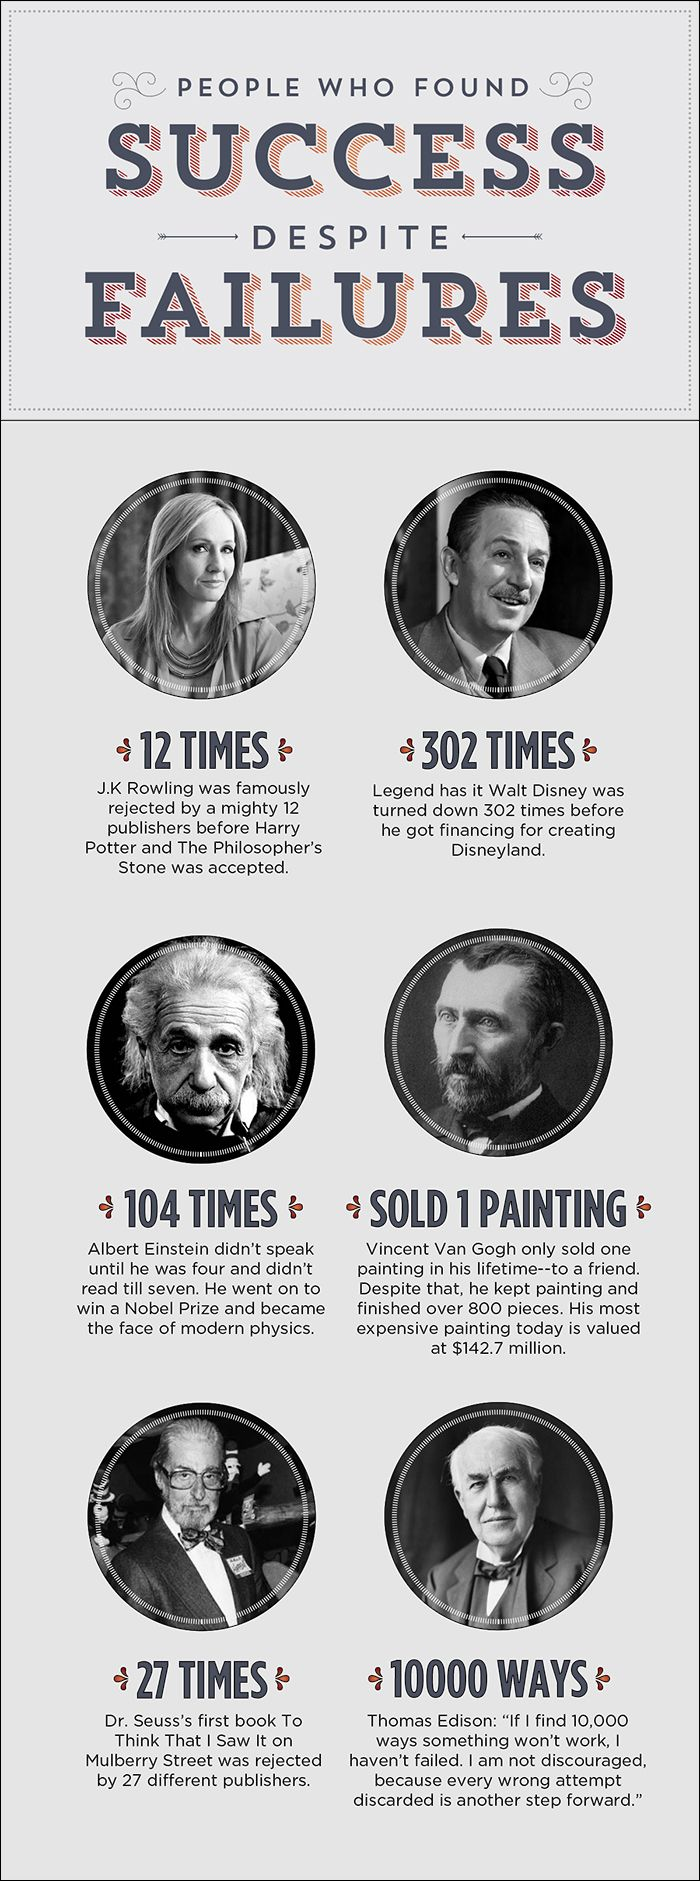 Famous People Who Found Success Despite Failures #Infographic - How many times can you pick yourself and try again? ... As many as it takes. -  ADDfreeSources: Resiliency - Believe  https://www.pinterest.com/addfreesources/resiliency-believe/